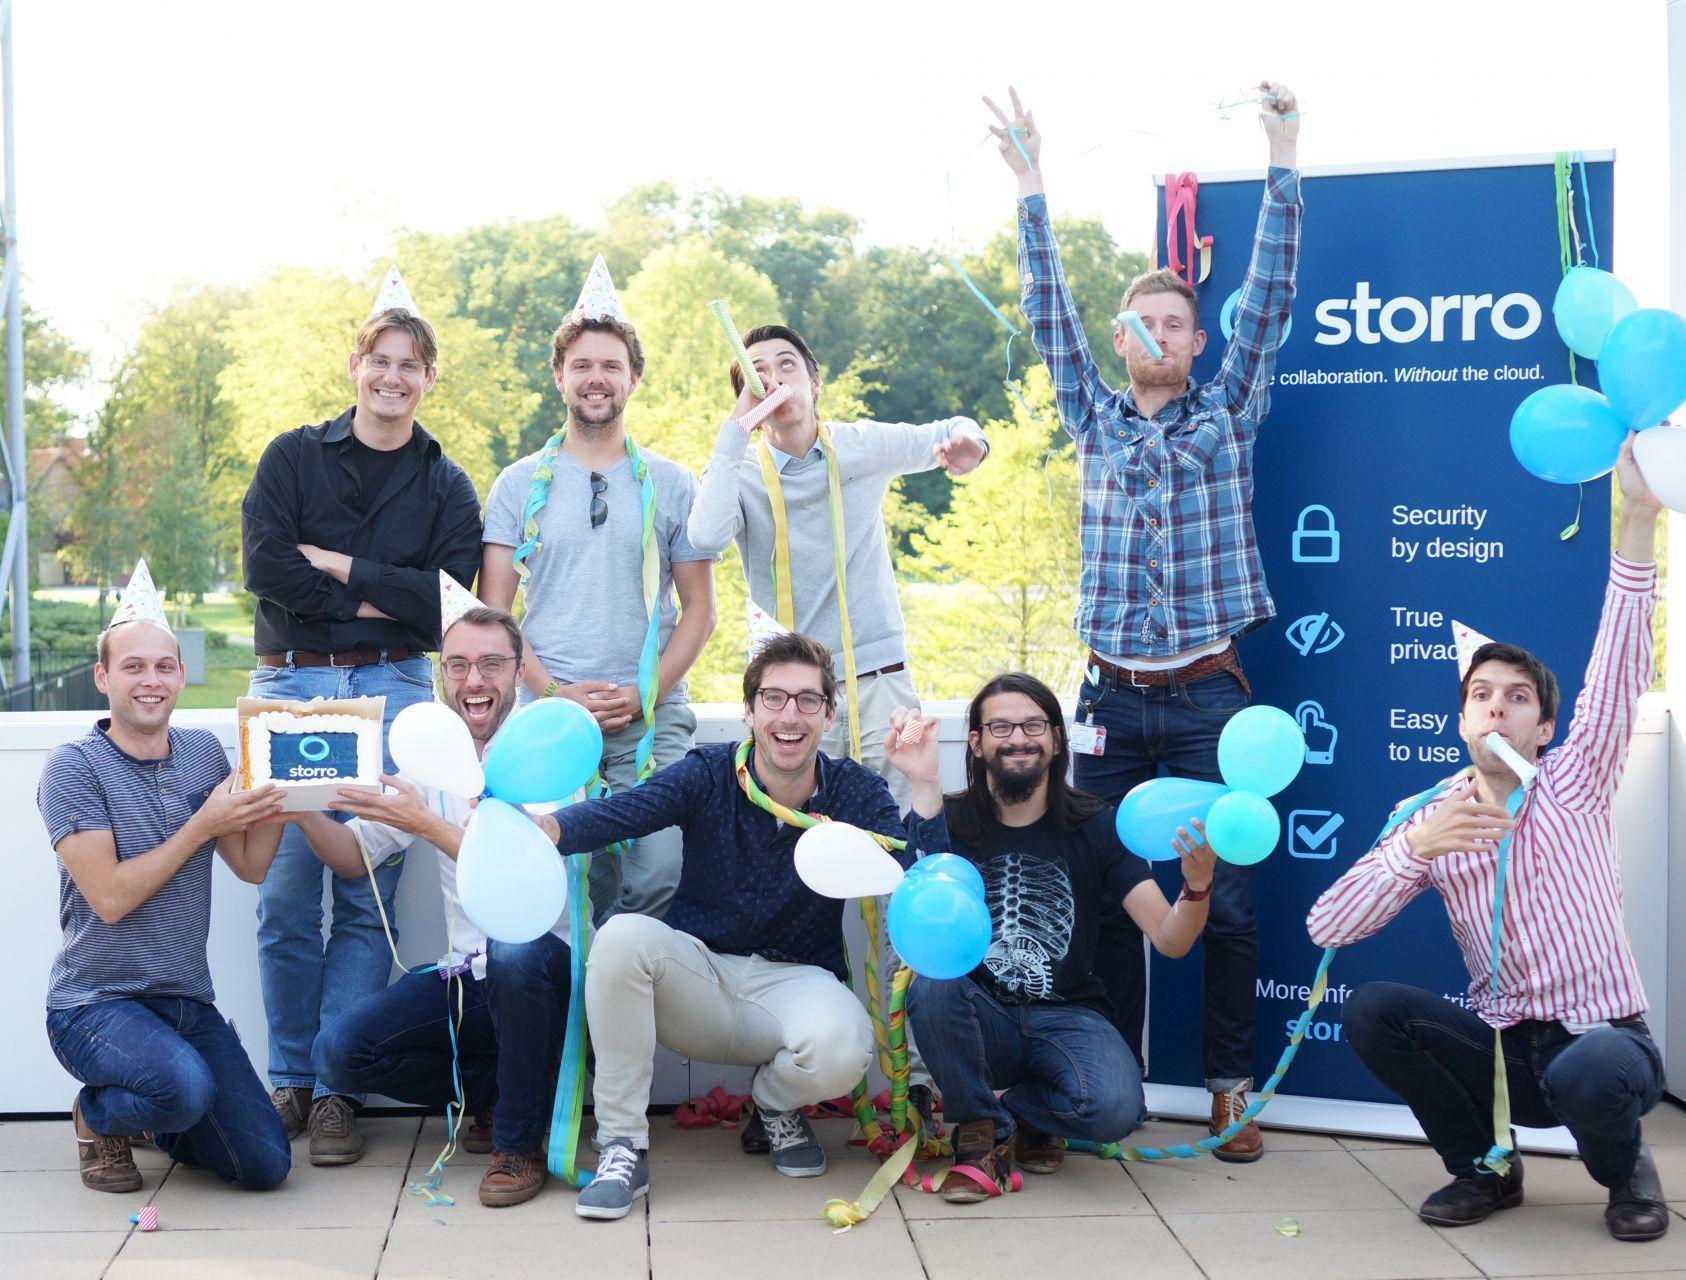 Dutch Startup Storro Launches Safe Dropbox Alternative